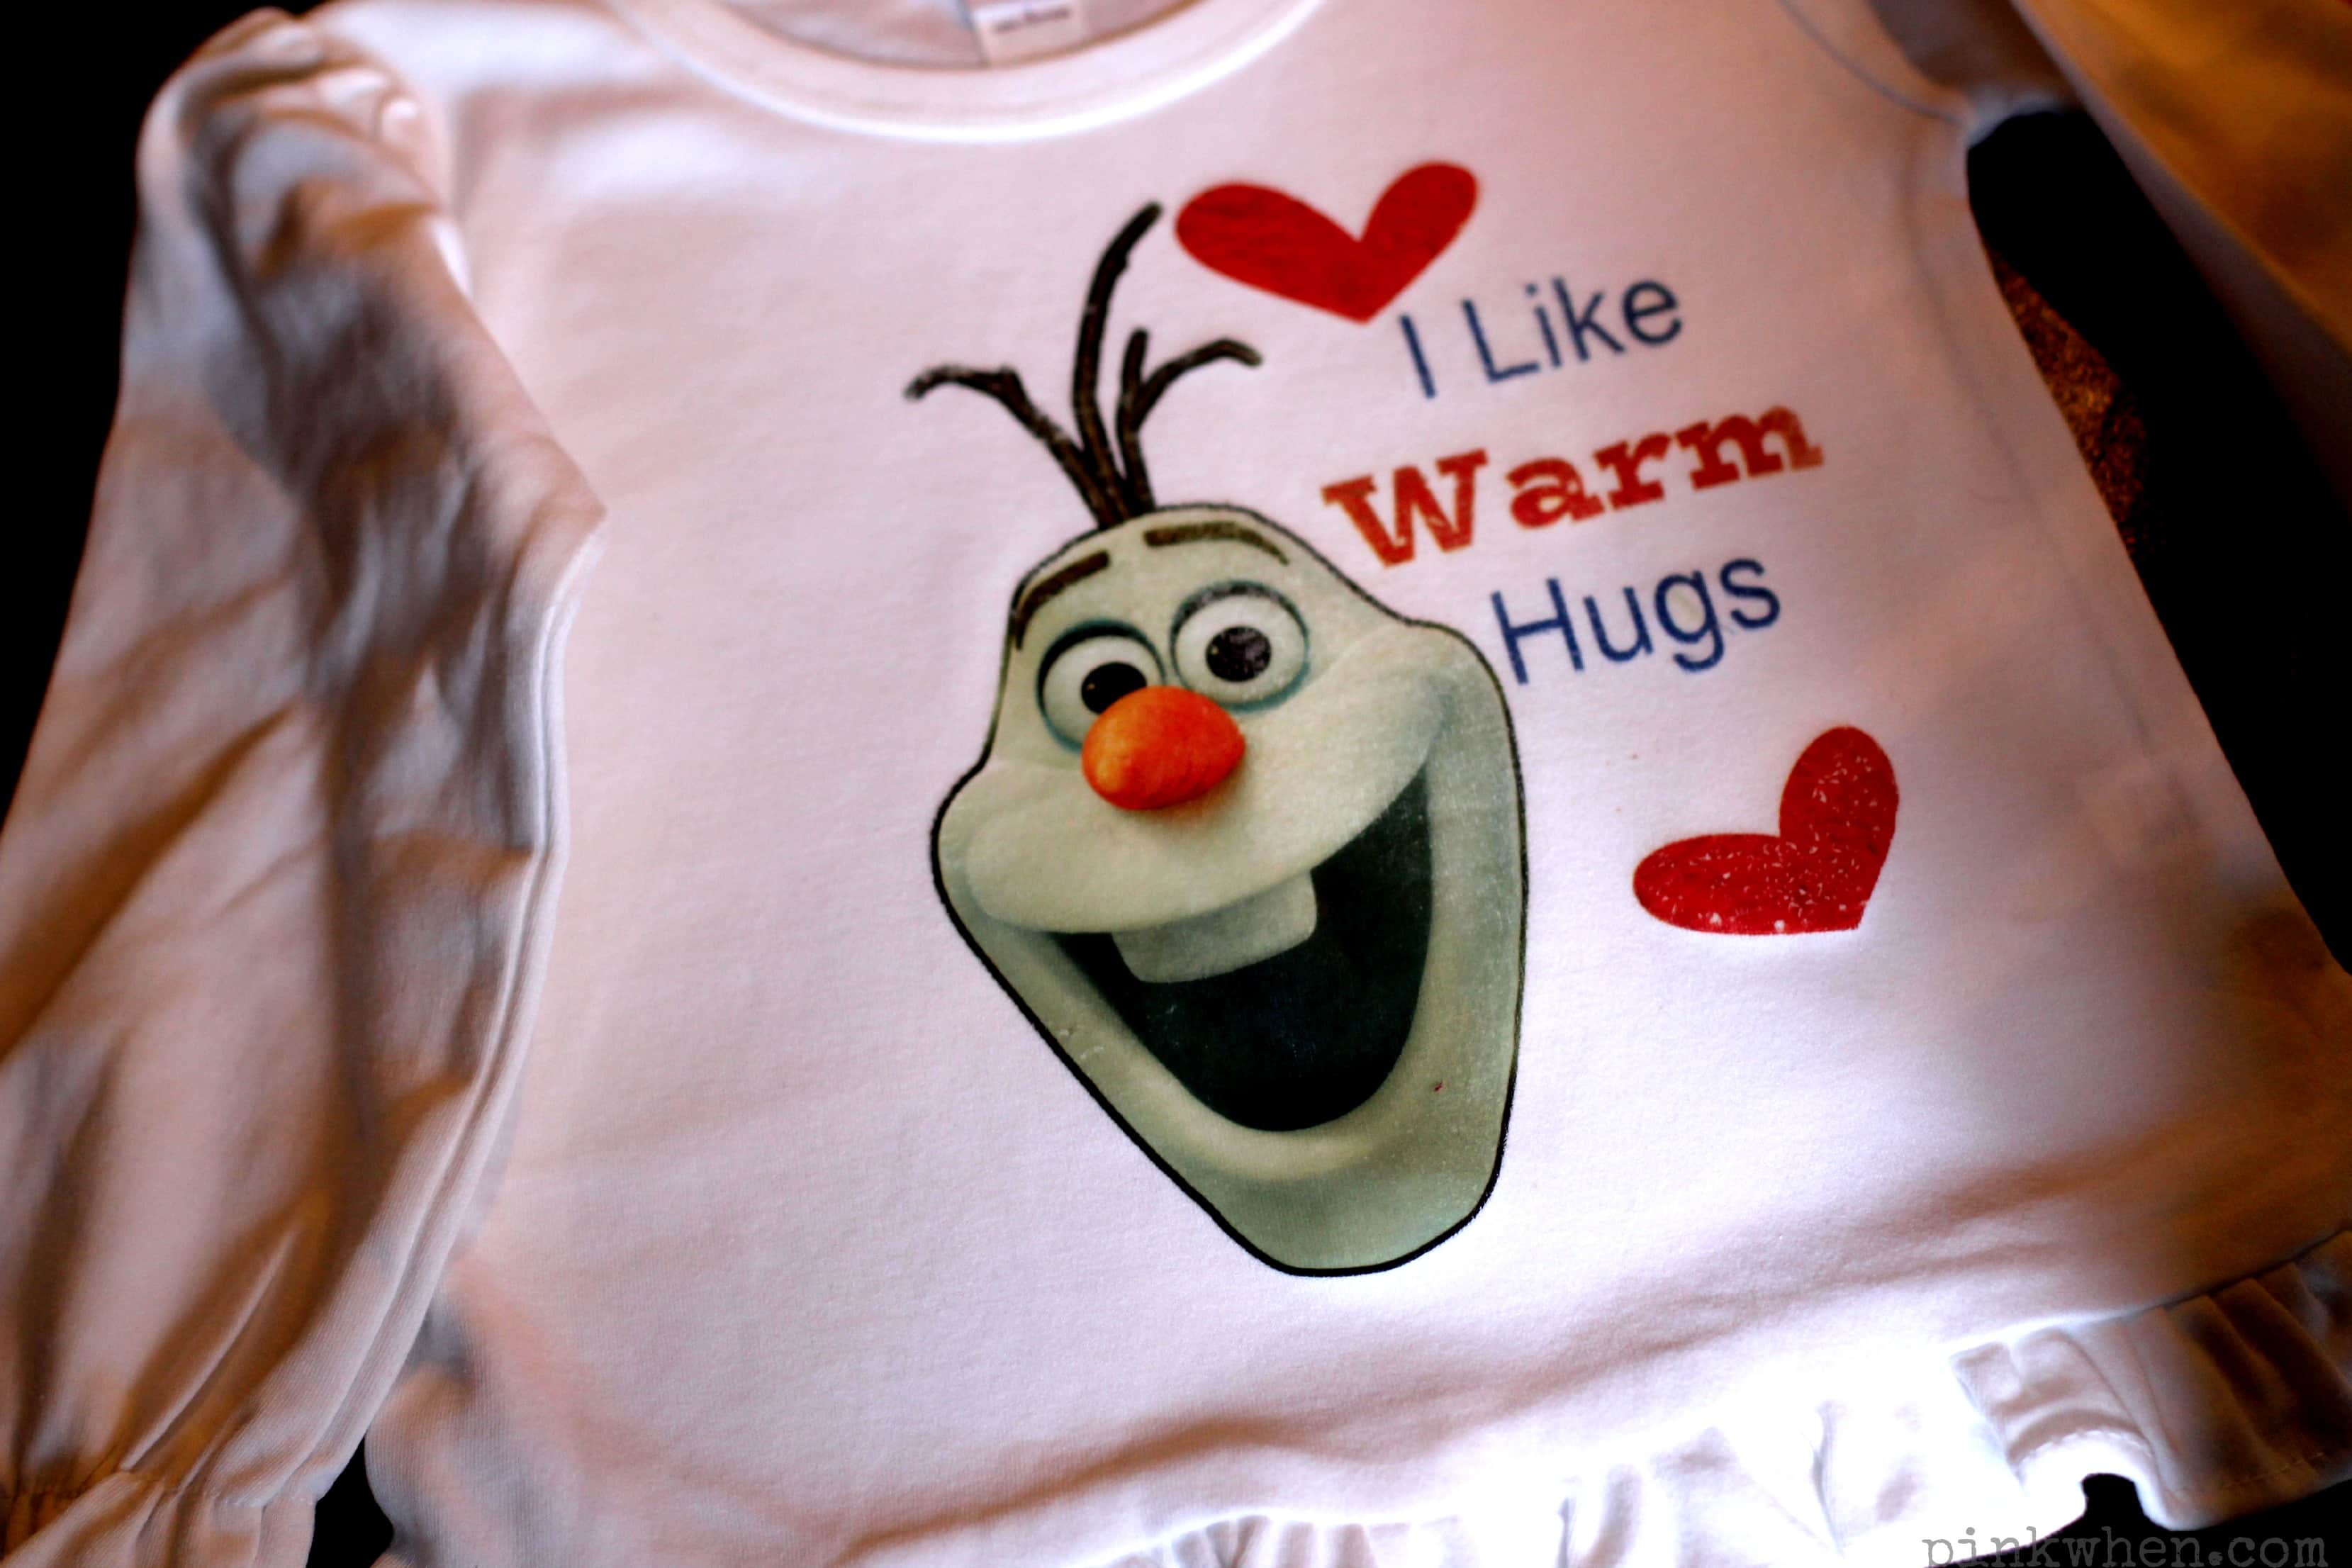 DIY Frozen Olaf Shirt Tutorial via PinkWhen.com